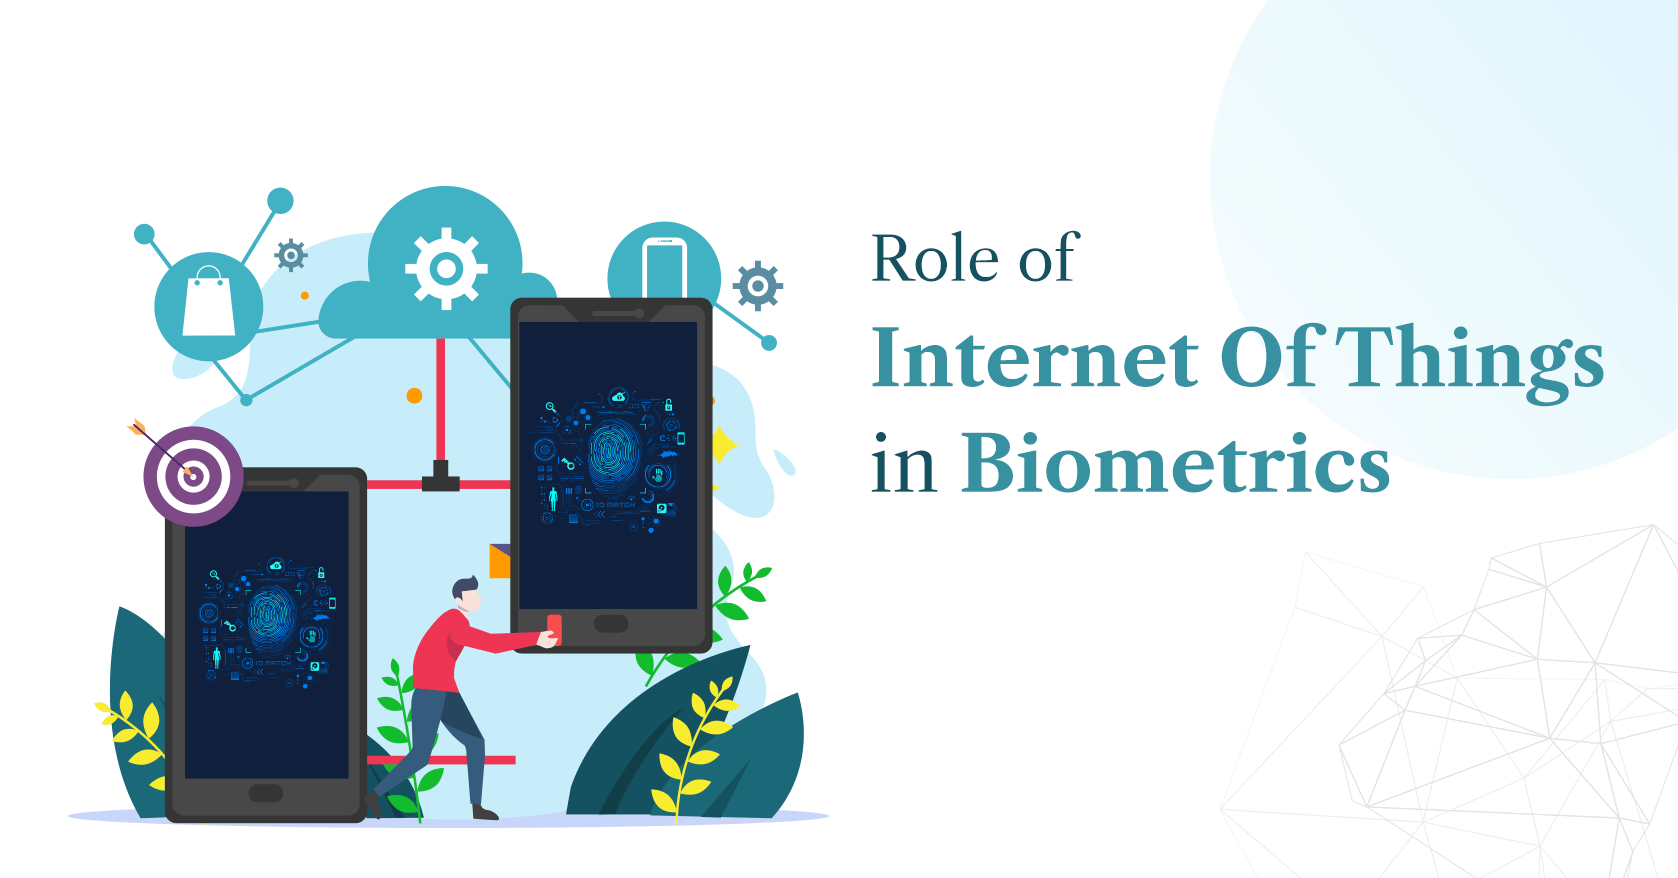 Role of Internet of Things in Biometrics